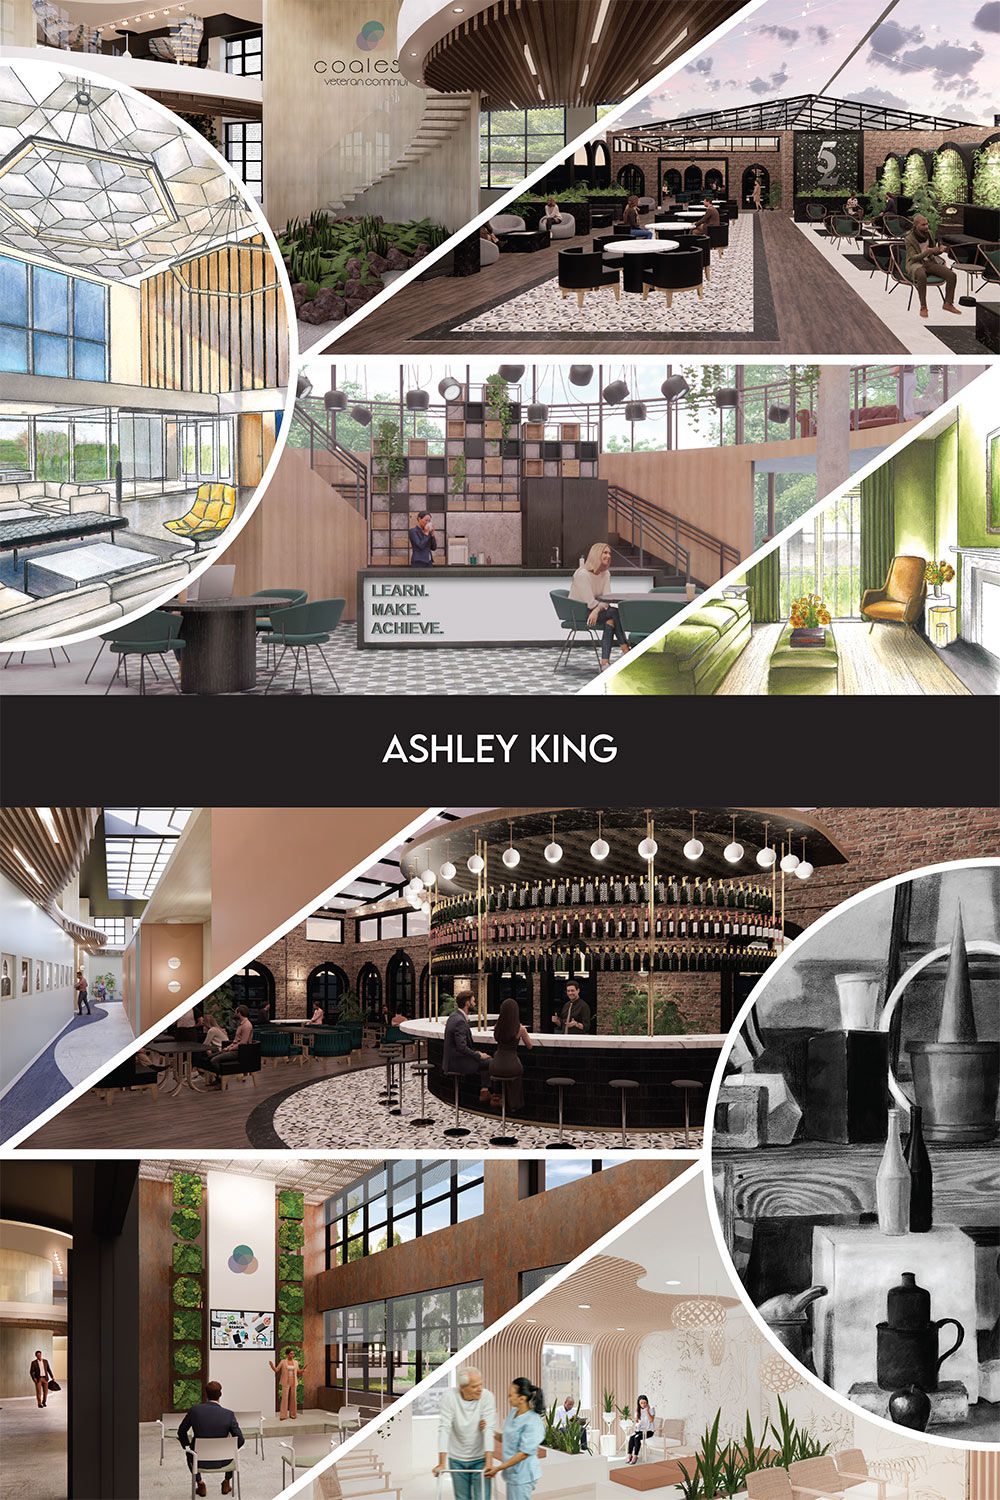 senior interior design board by Ashley King